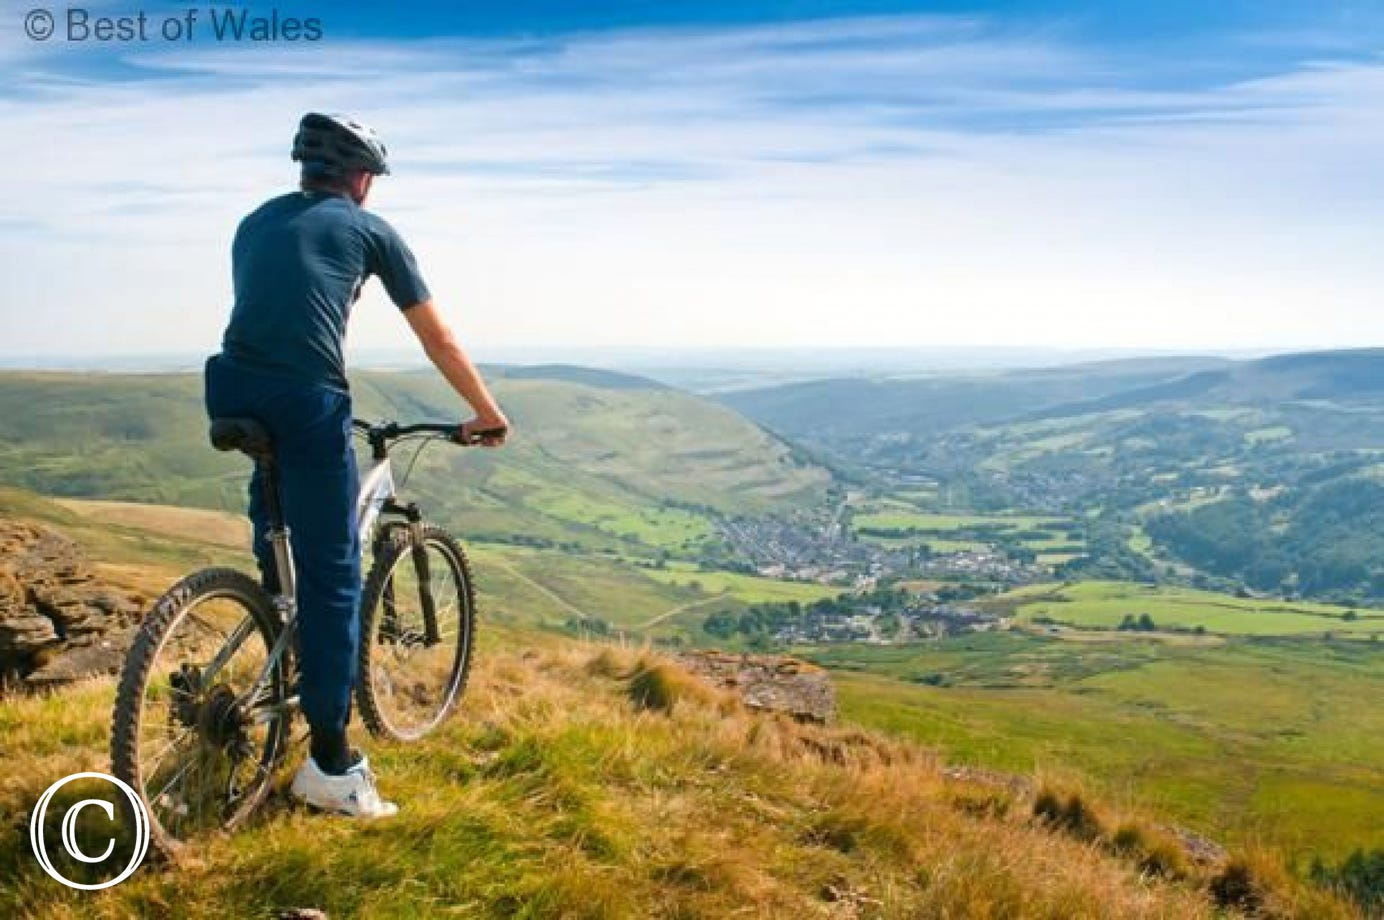 Superb mountain biking in the area including Bike Park Wales